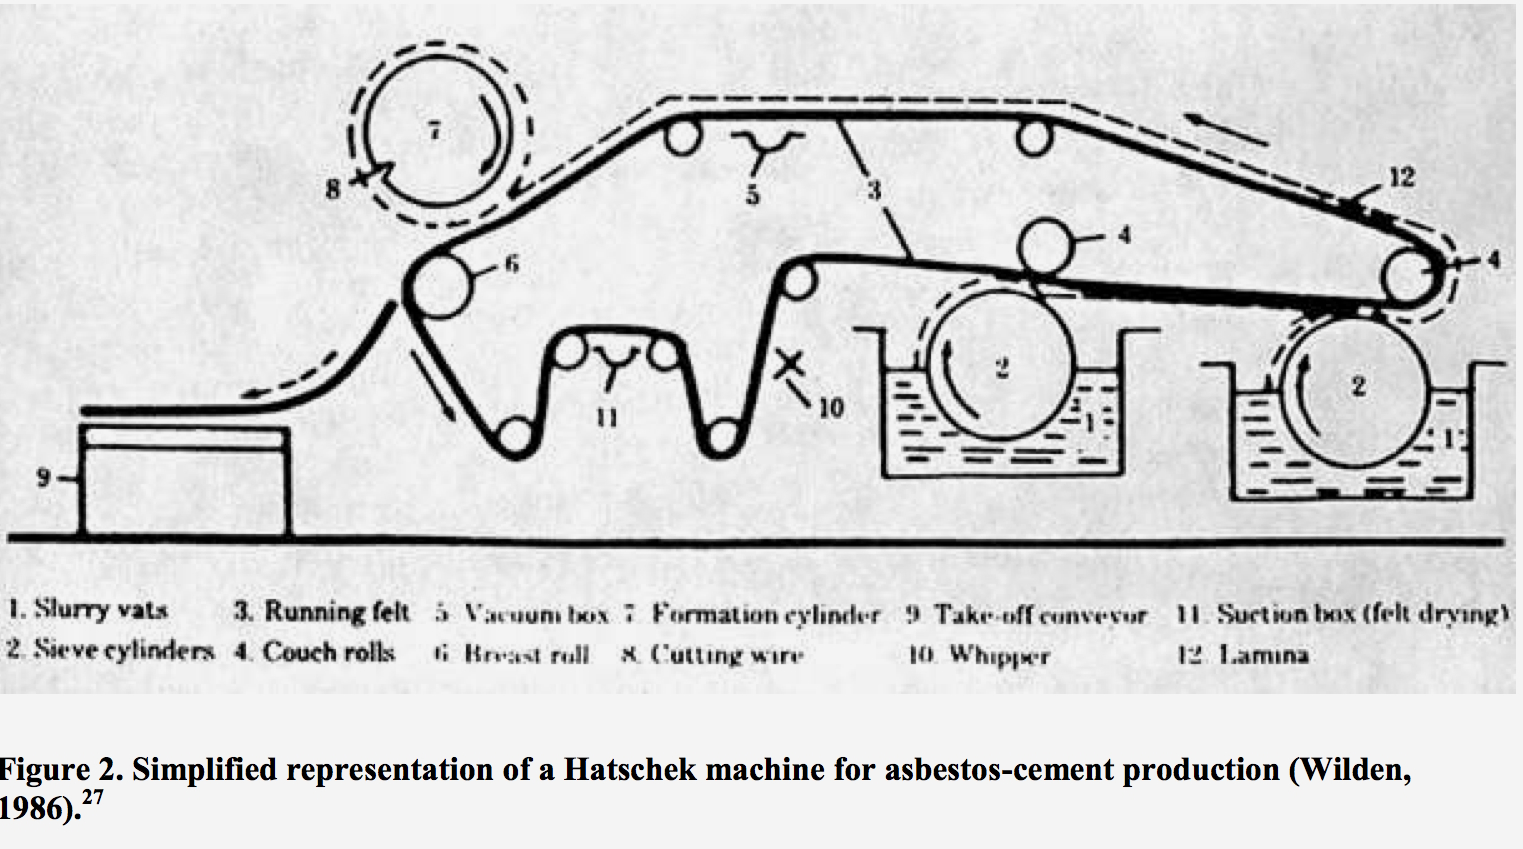 Asbestos cement production methods asbestos cement roofing hatschek machine for production of asbestos sheet goods wilden 1986 woods nvjuhfo Gallery